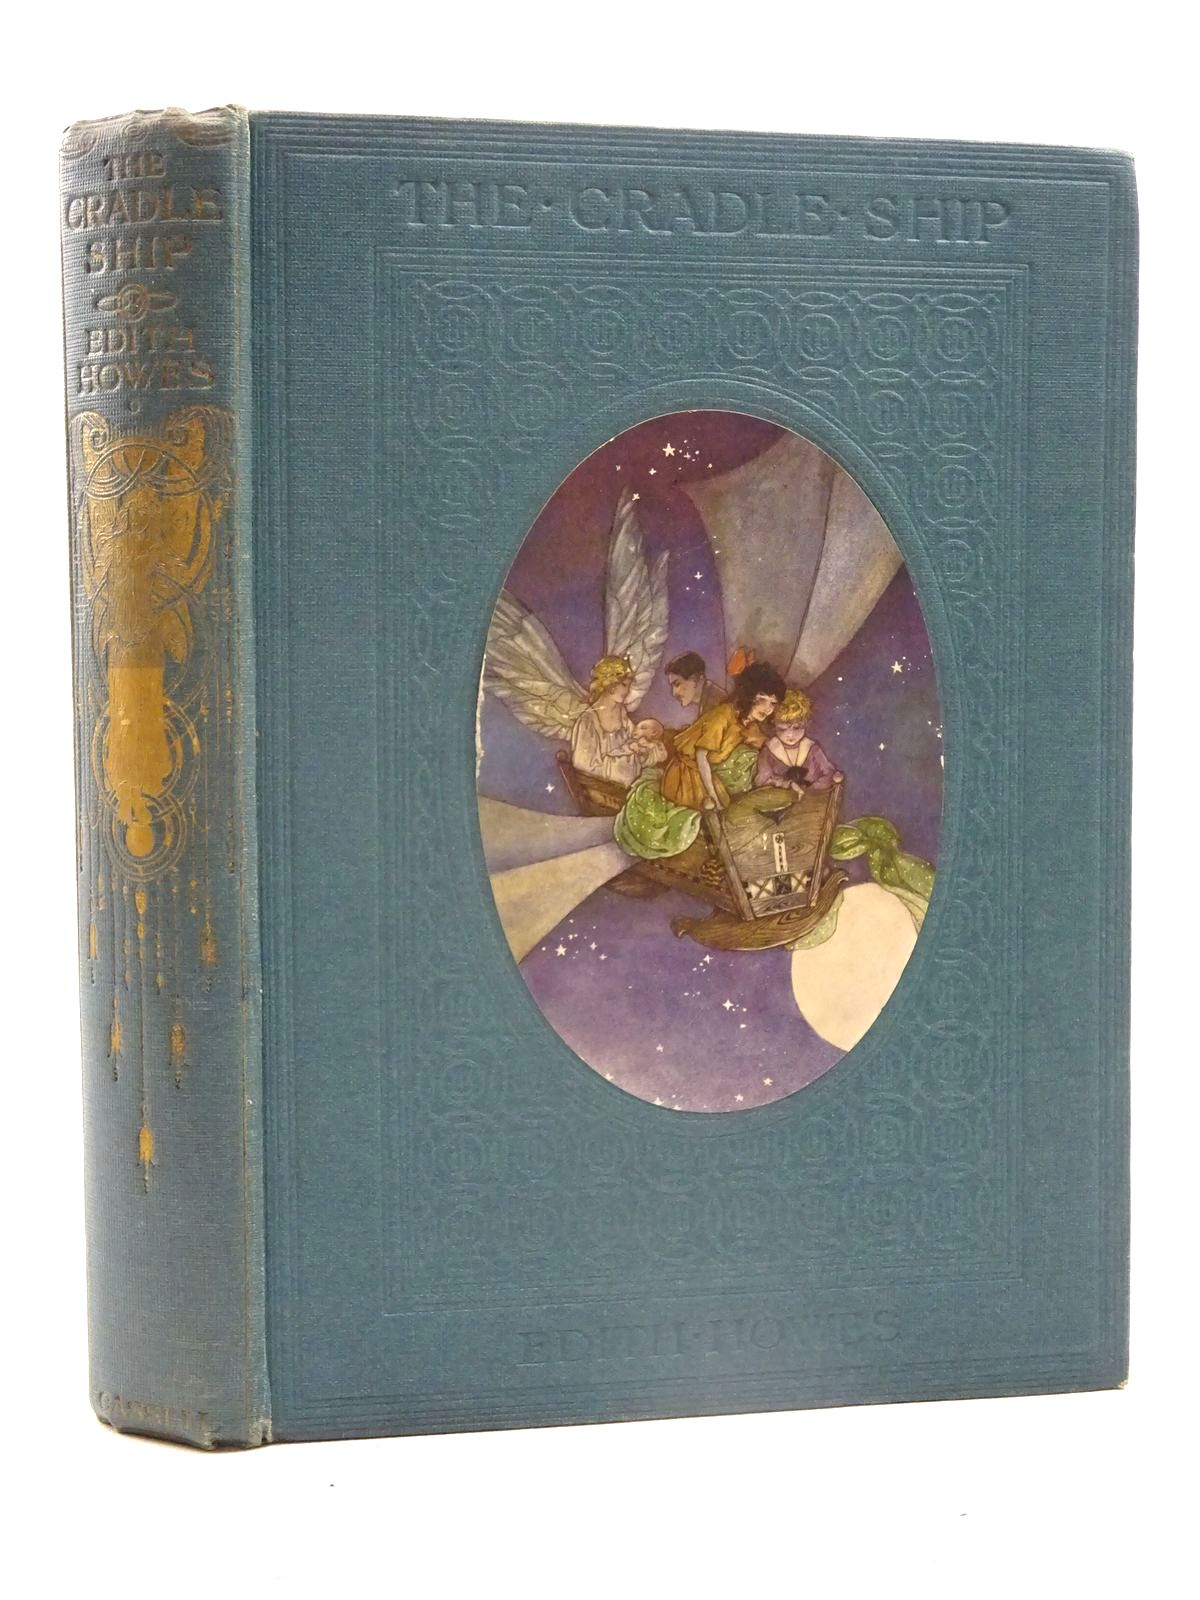 Photo of THE CRADLE SHIP written by Howes, Edith illustrated by Anderson, Florence Mary published by Cassell & Co. Ltd. (STOCK CODE: 2125714)  for sale by Stella & Rose's Books